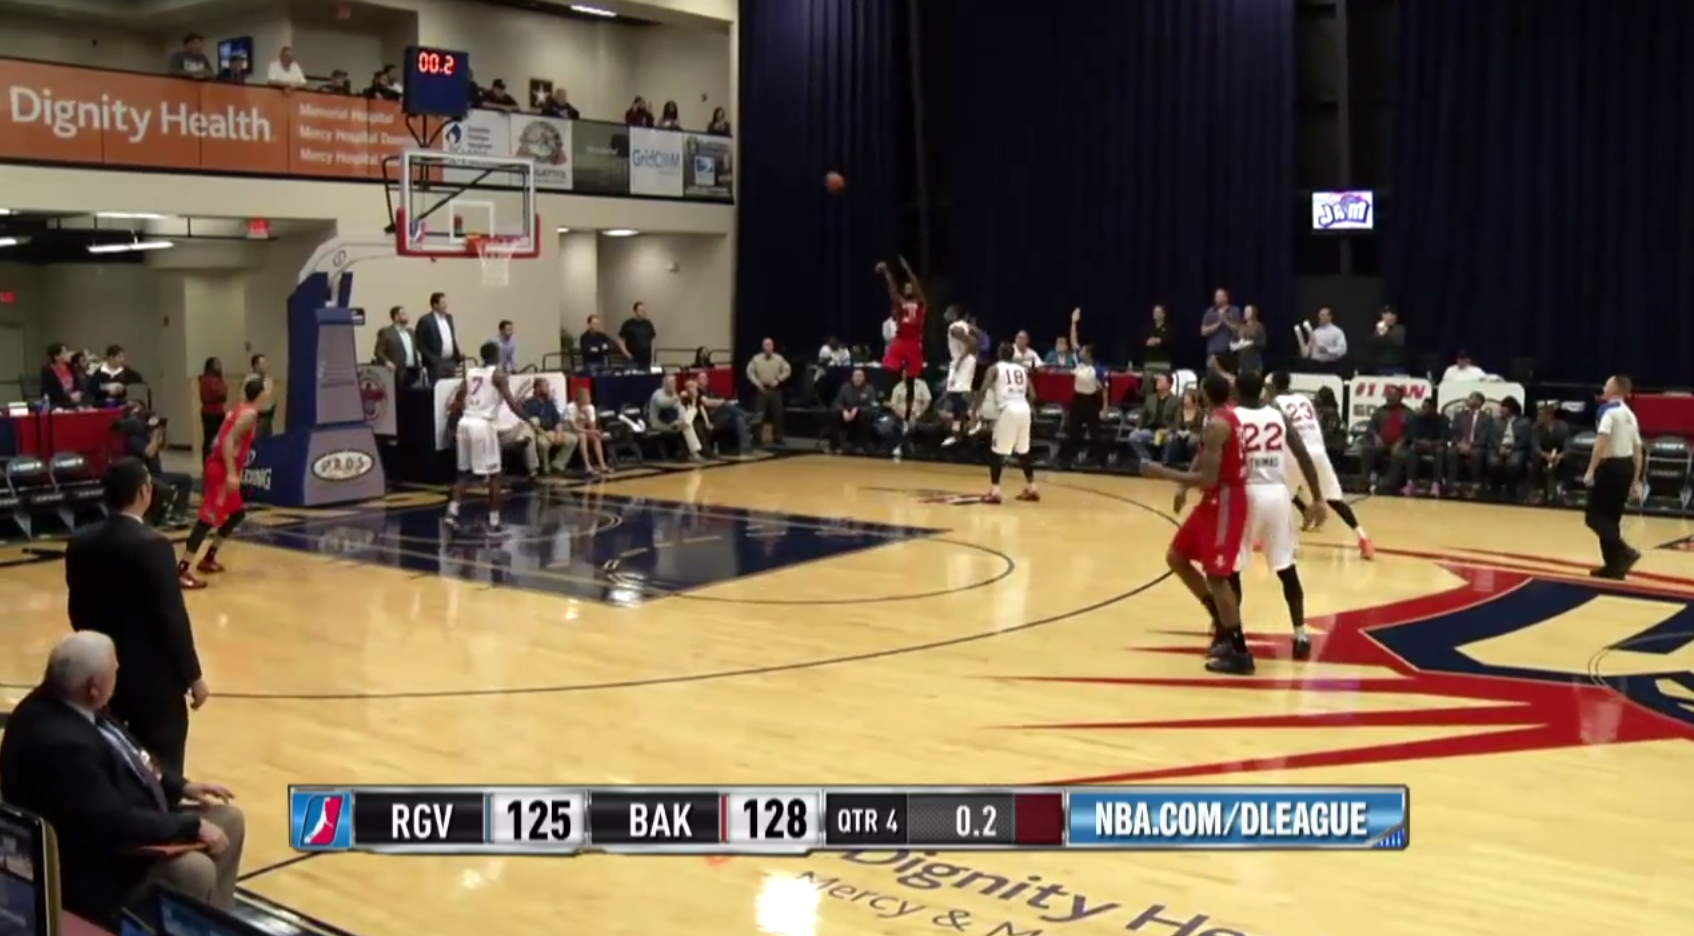 NBA D-League Three Pointers Ending